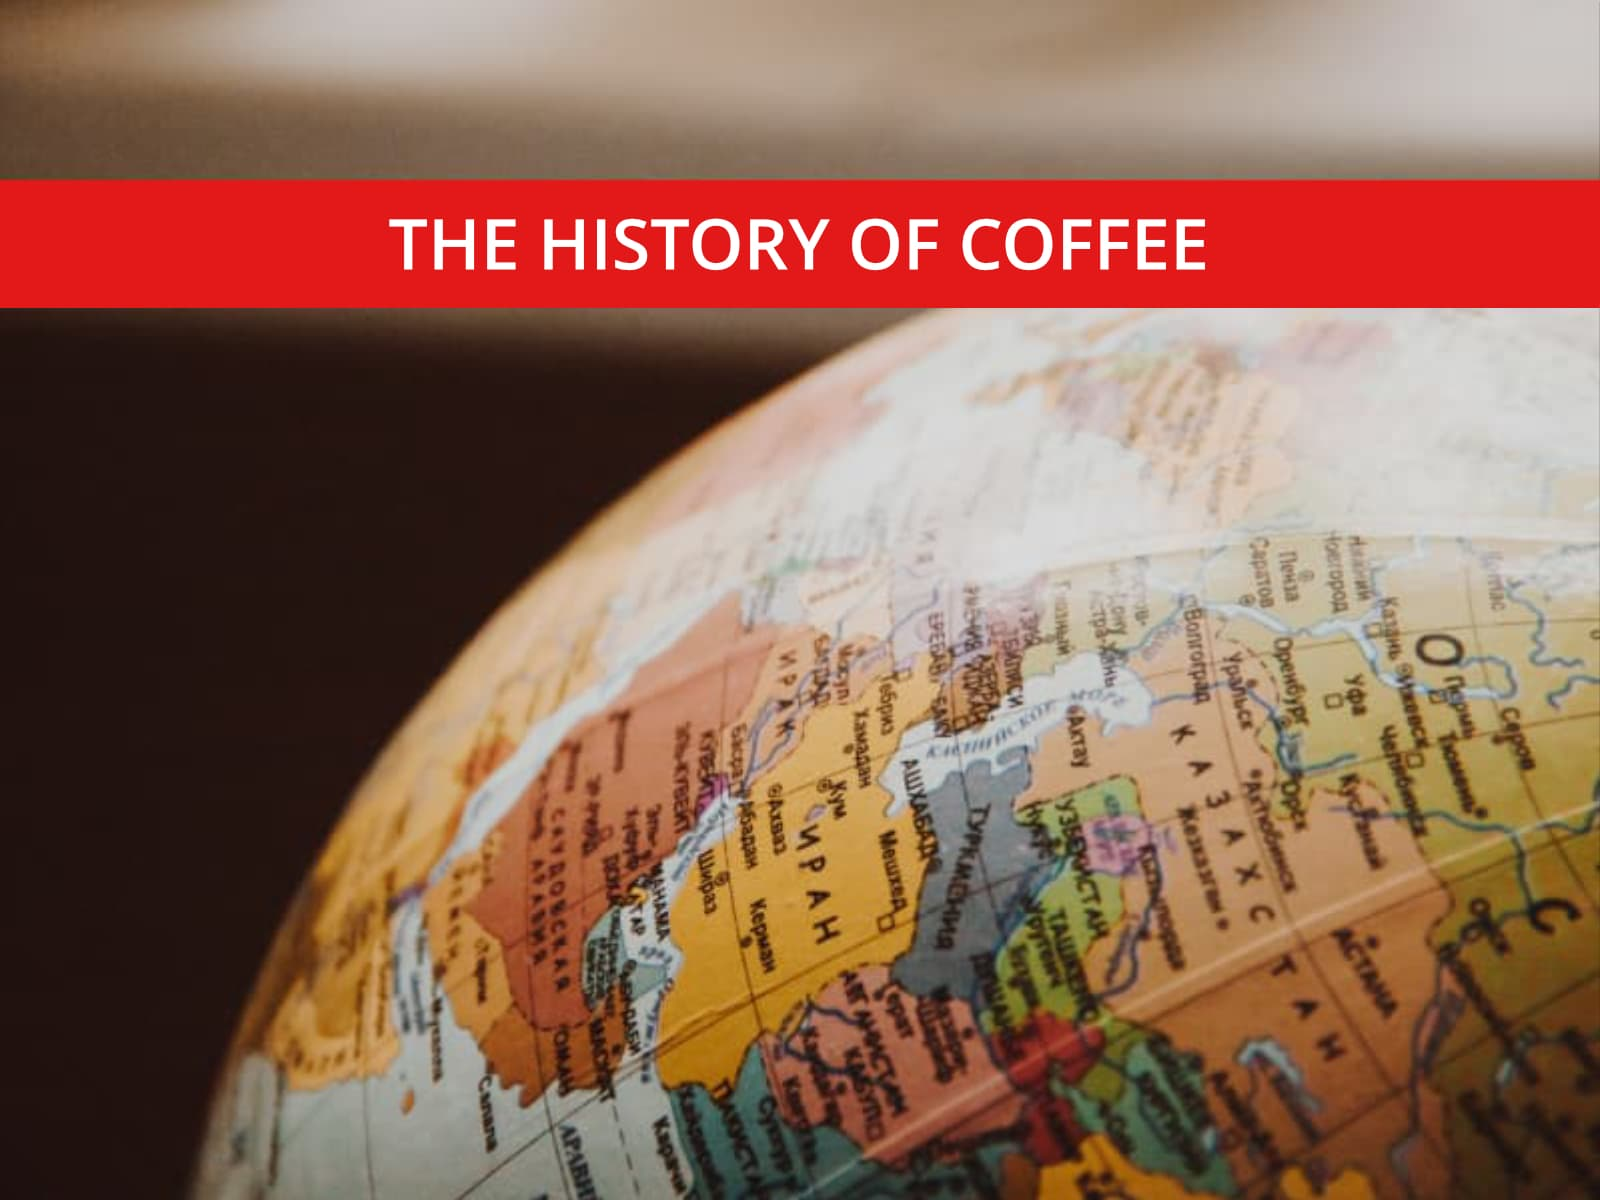 The history of coffee. The history of the world's most famous beverage.